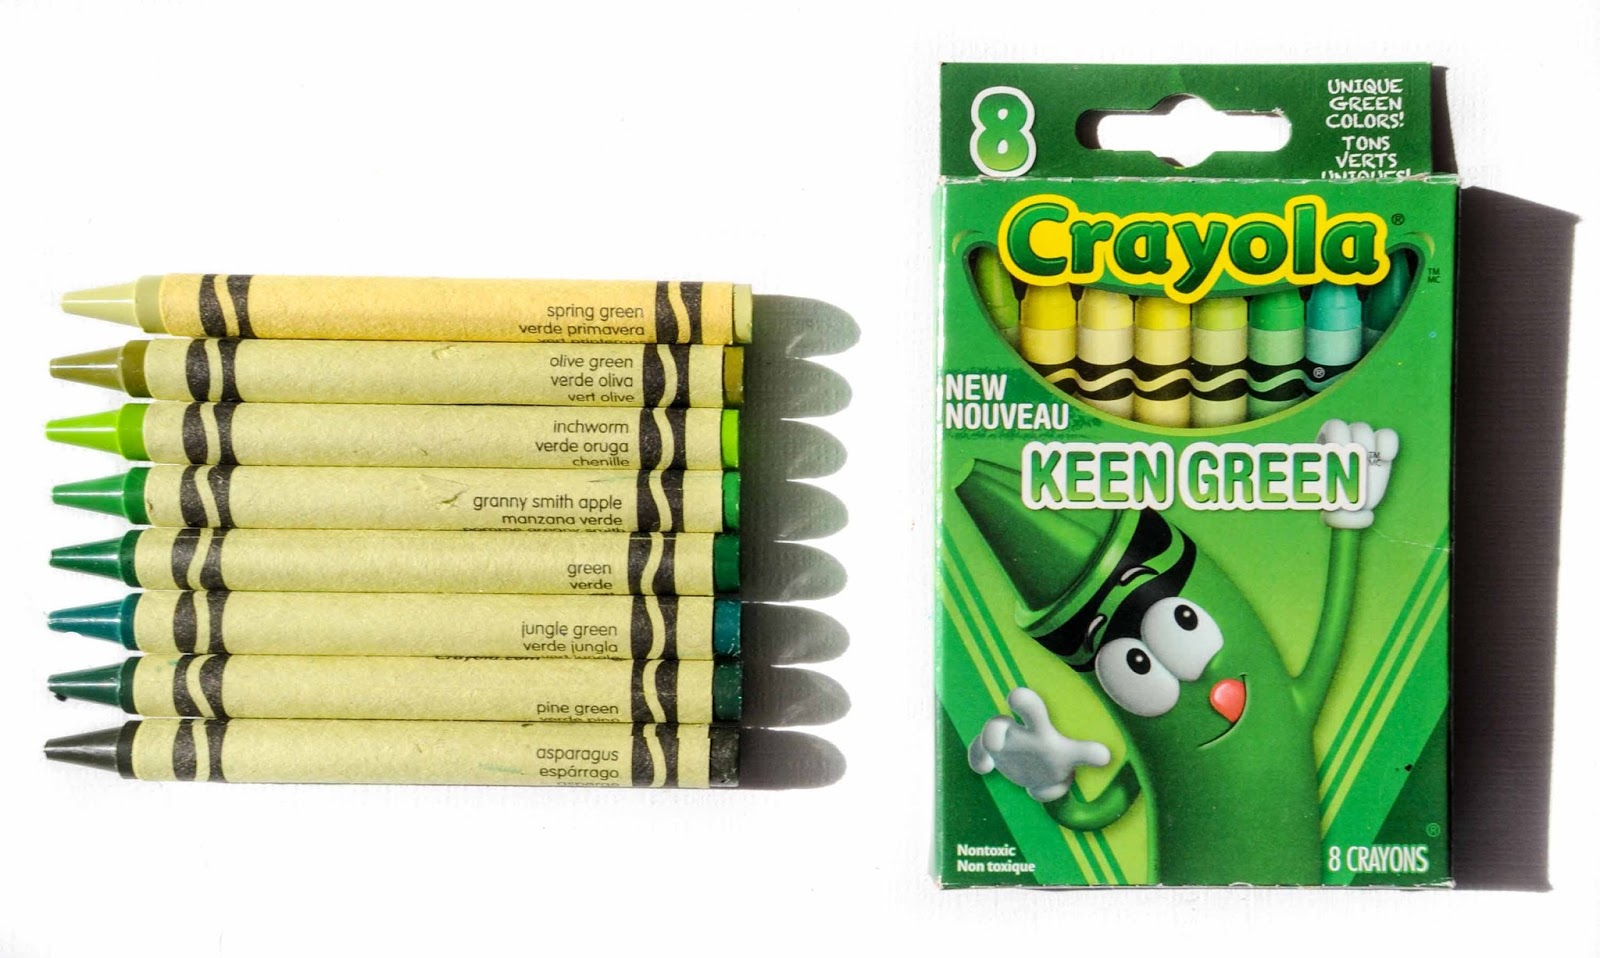 8 Count Crayola Tip Collection Crayons: What\'s Inside the Box ...